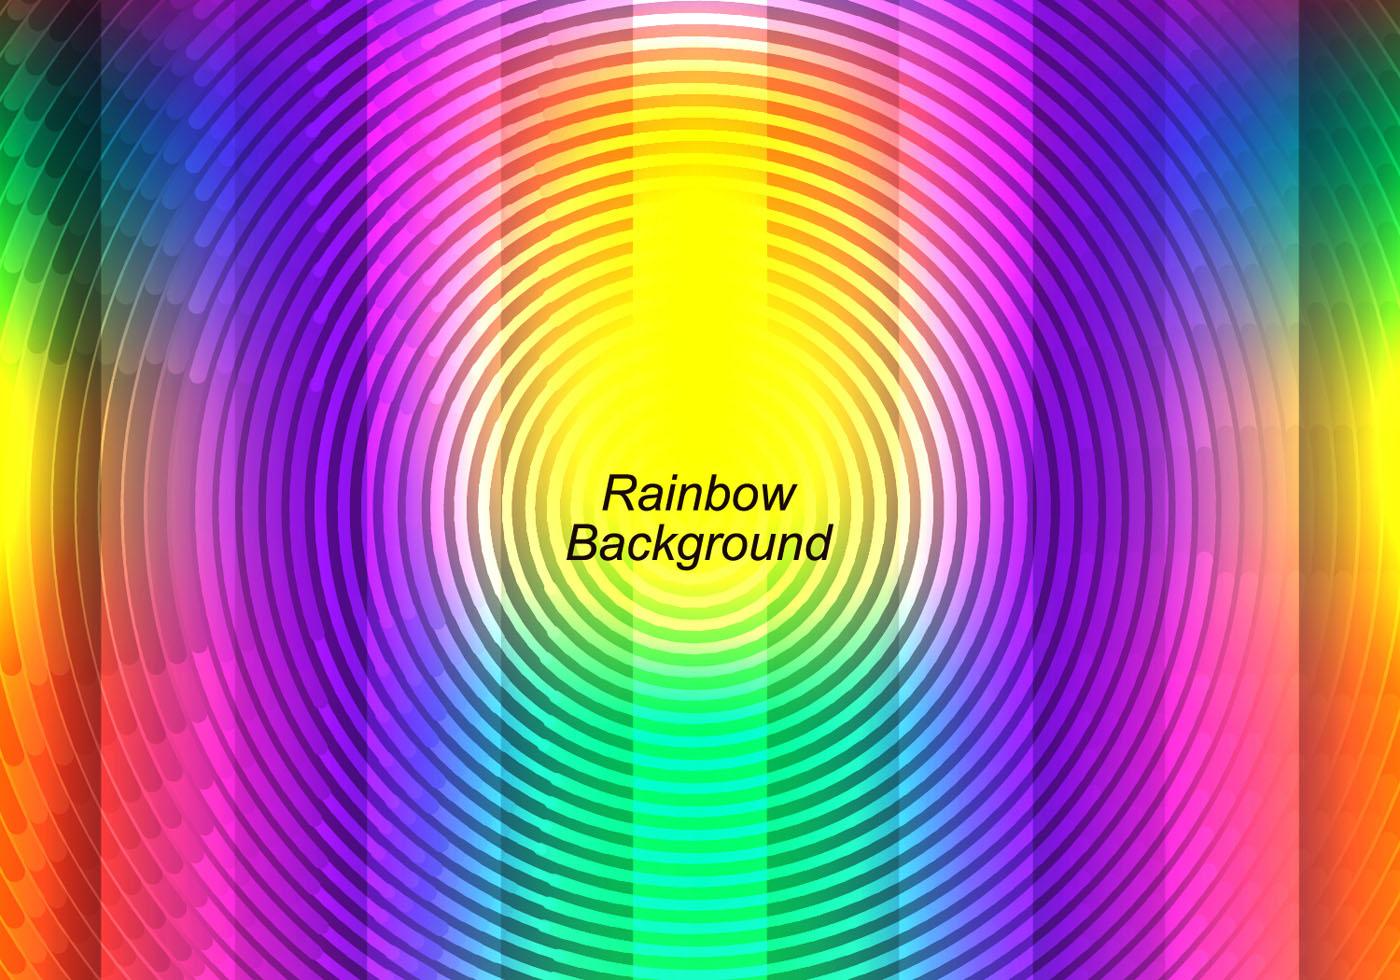 free vector colorful rainbow background download vetores e